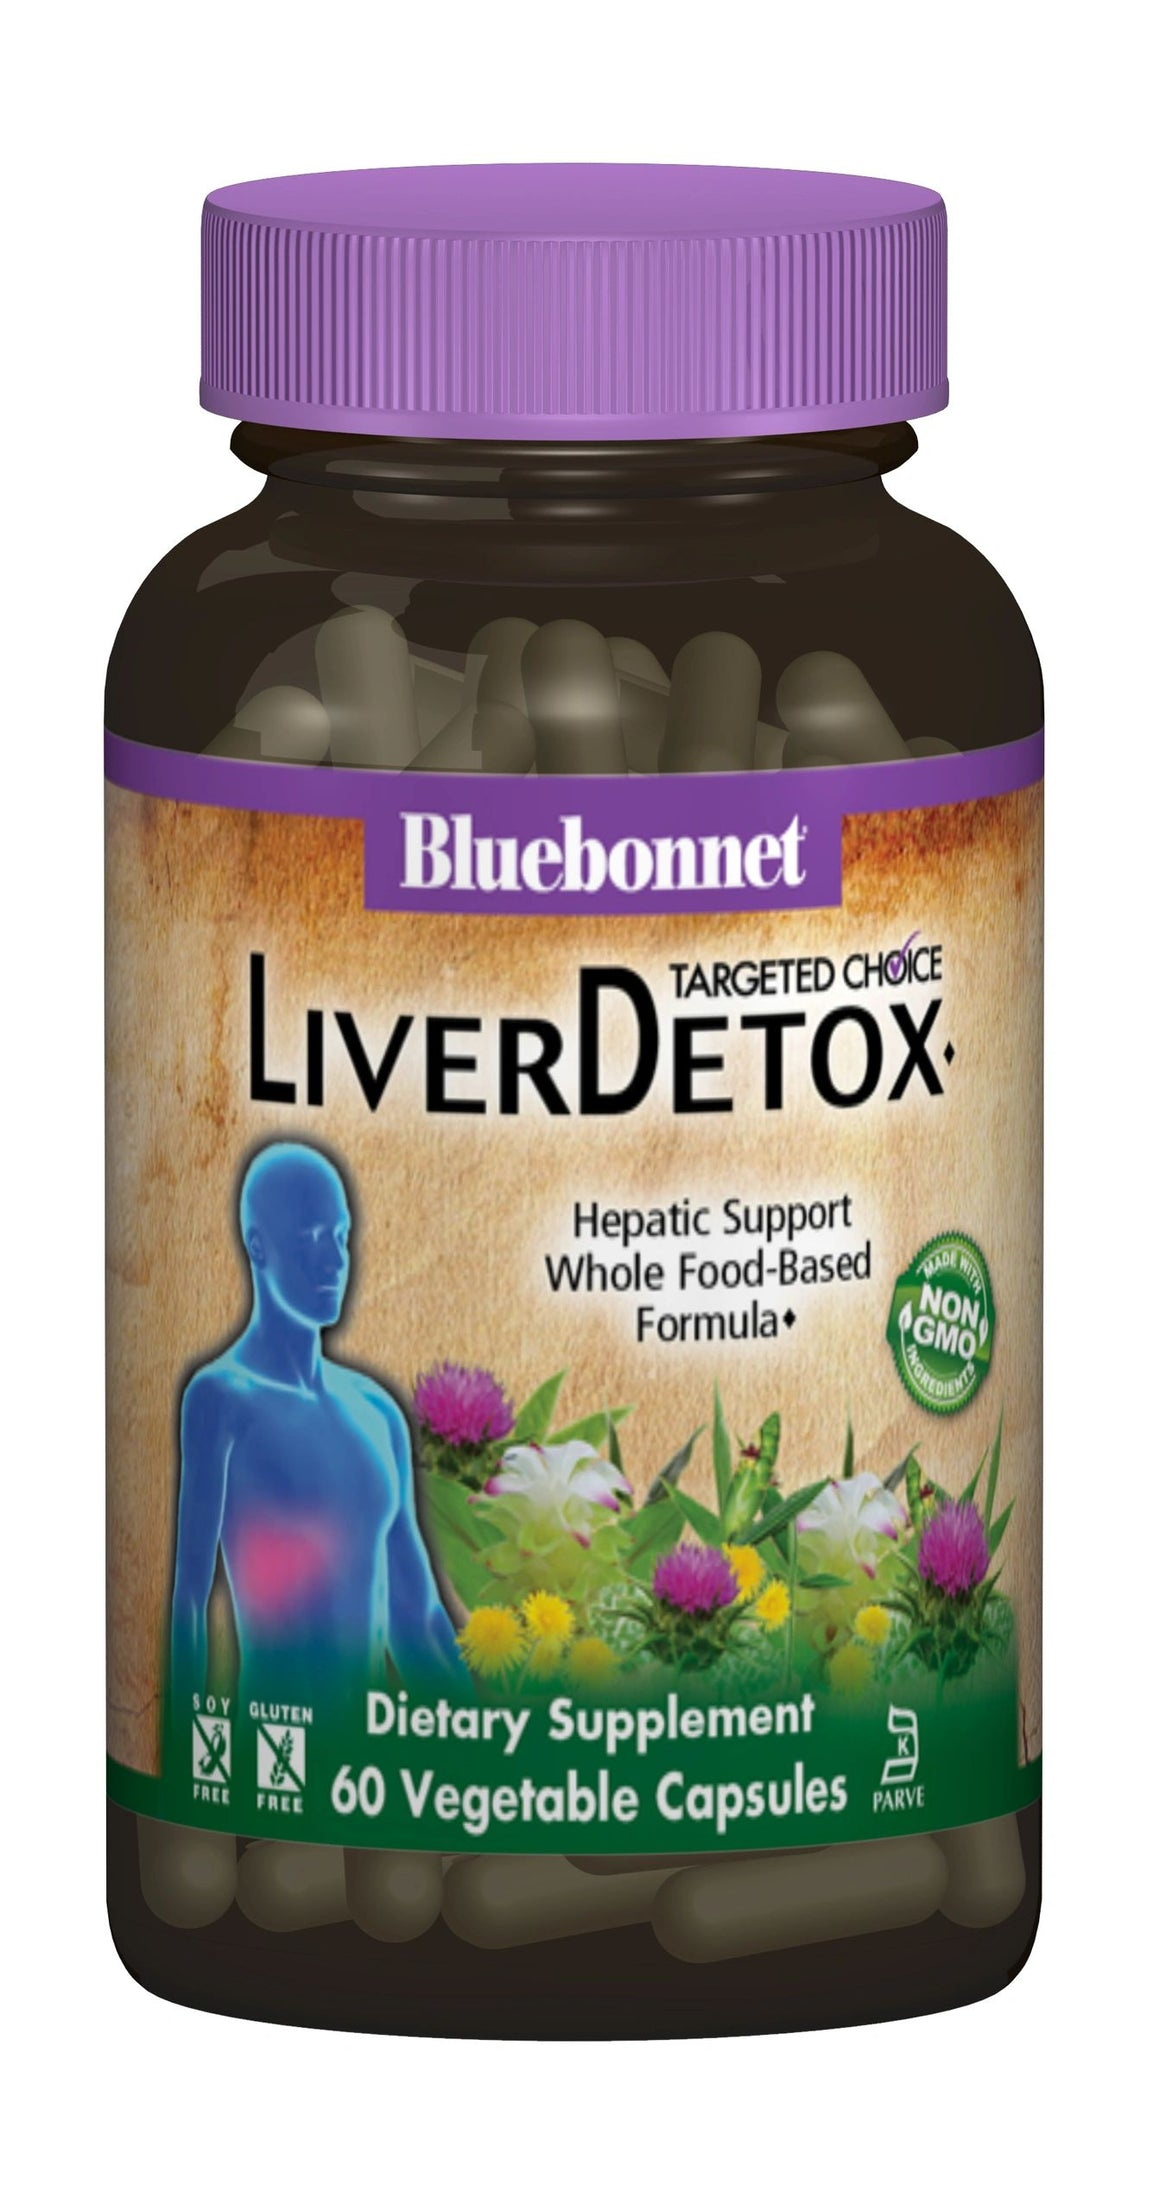 A bottle of Bluebonnet Targeted Choice® Liver Detox